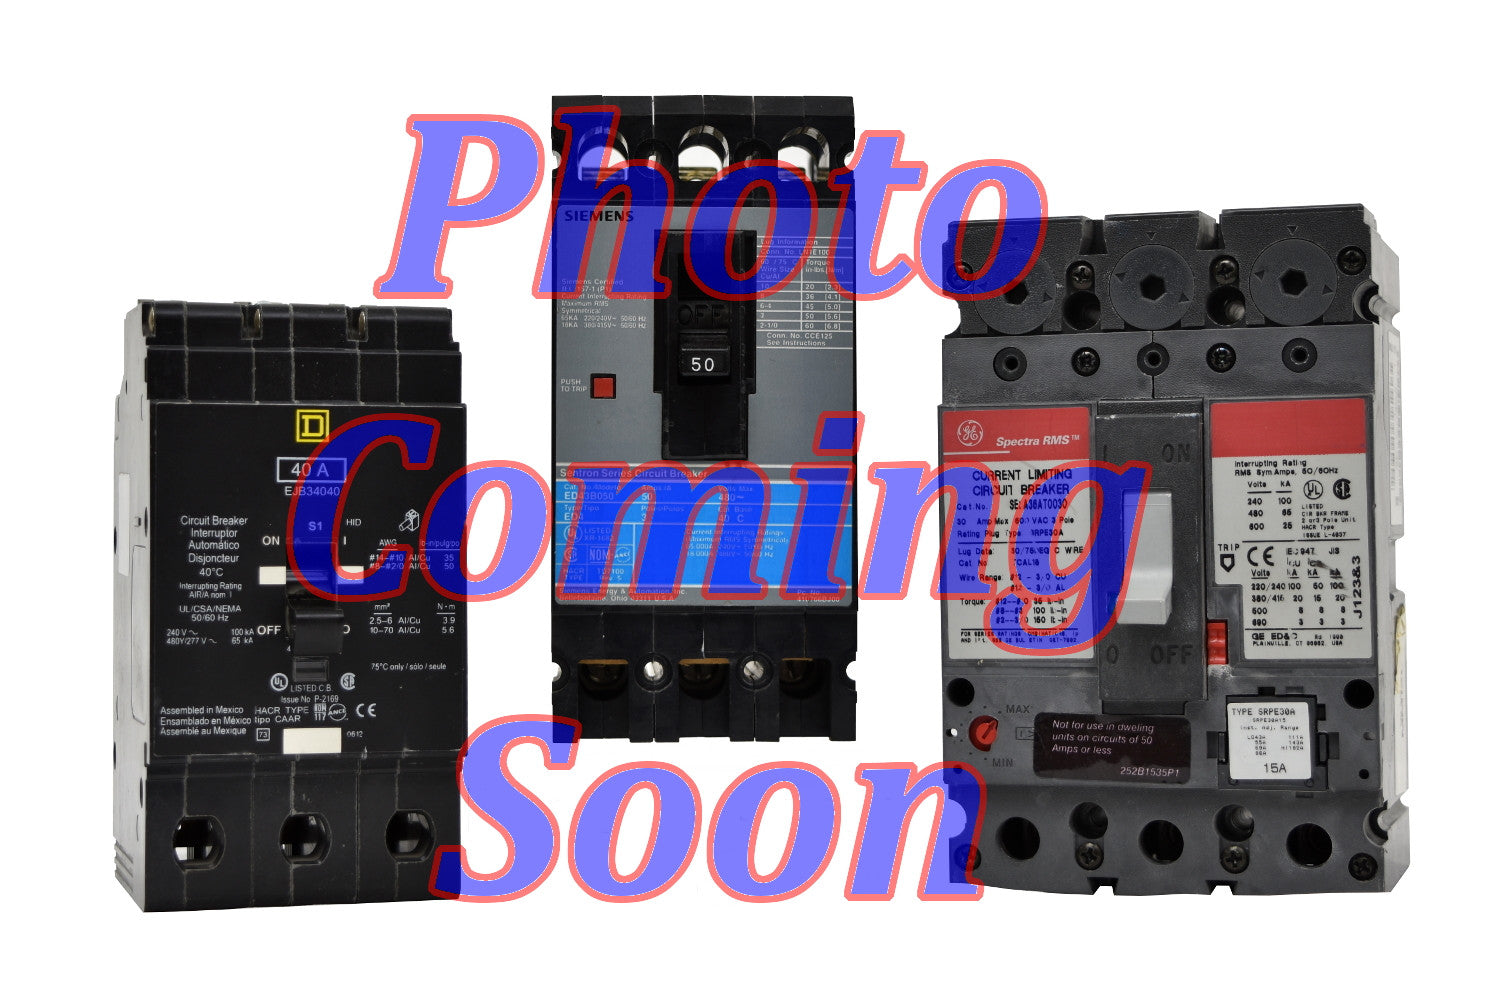 General Electric FCS36TE070R1 Circuit Breakers